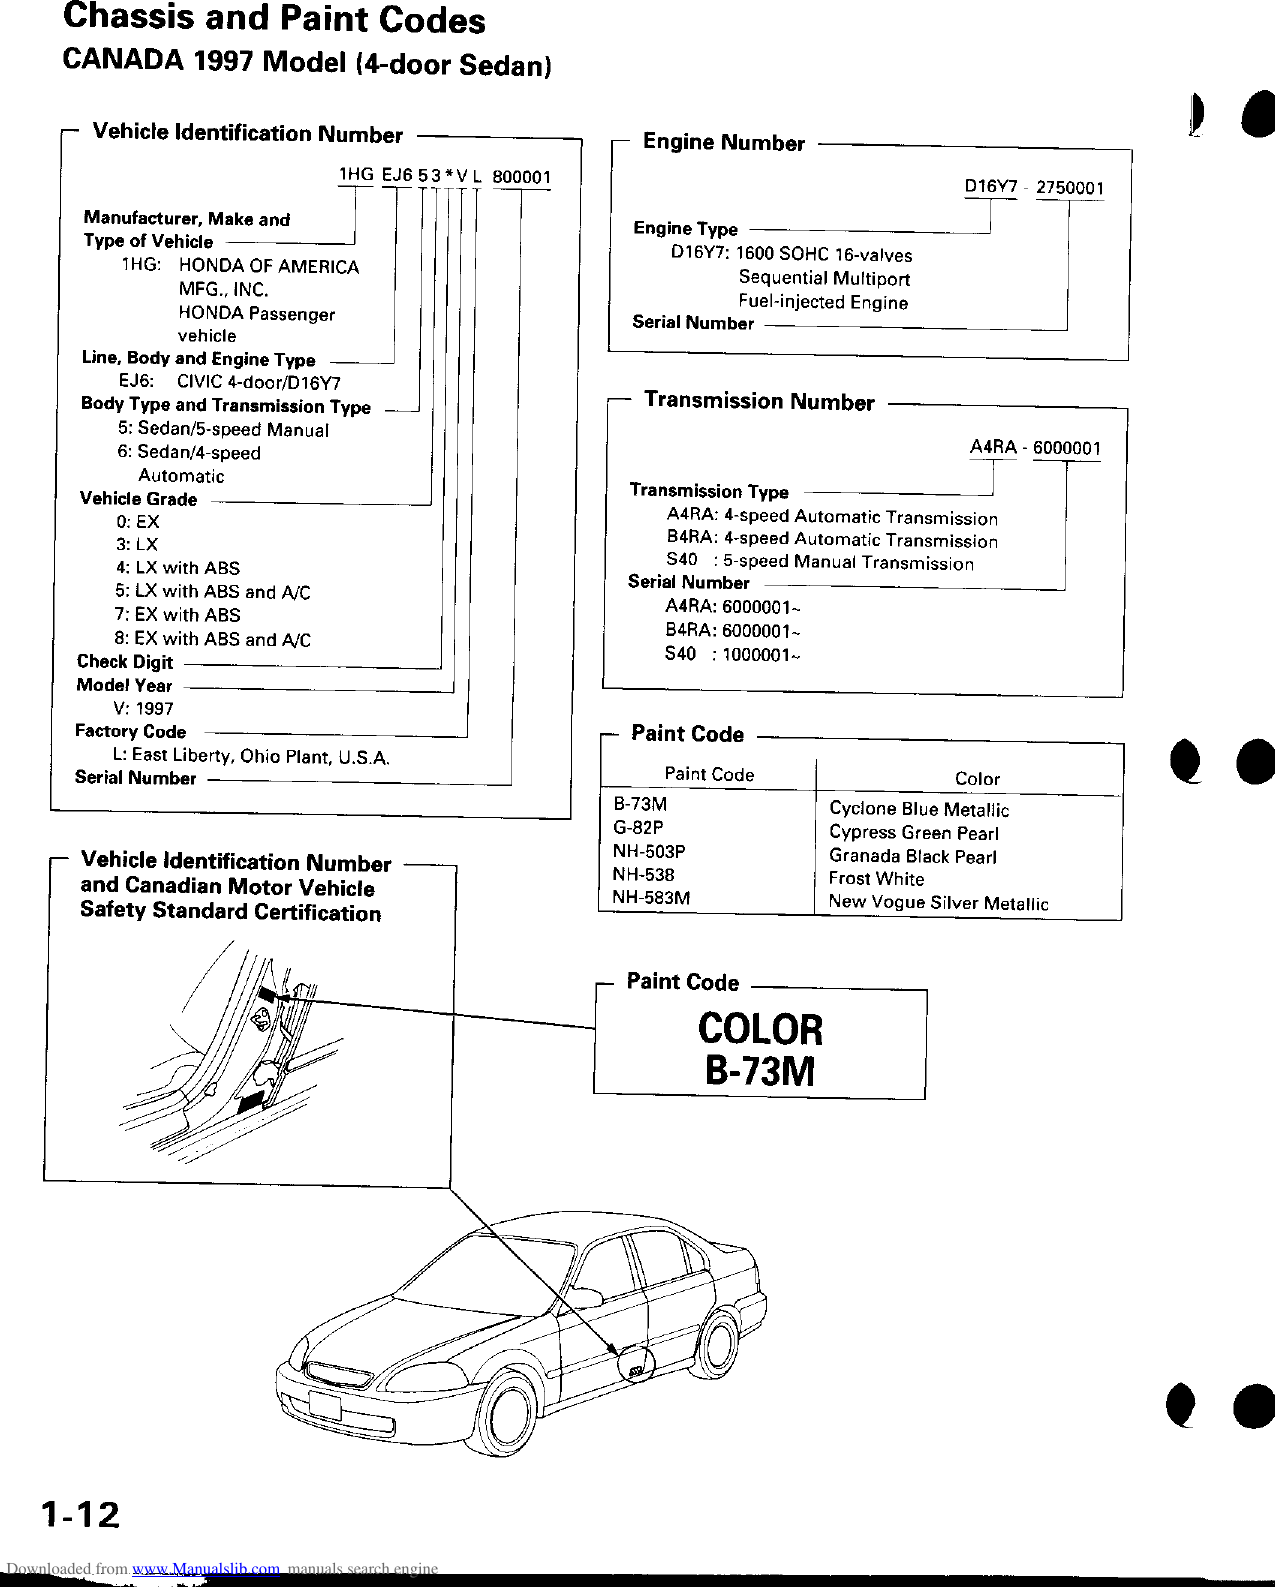 Honda Civic Service Manual ManualsLib Makes It Easy To Find